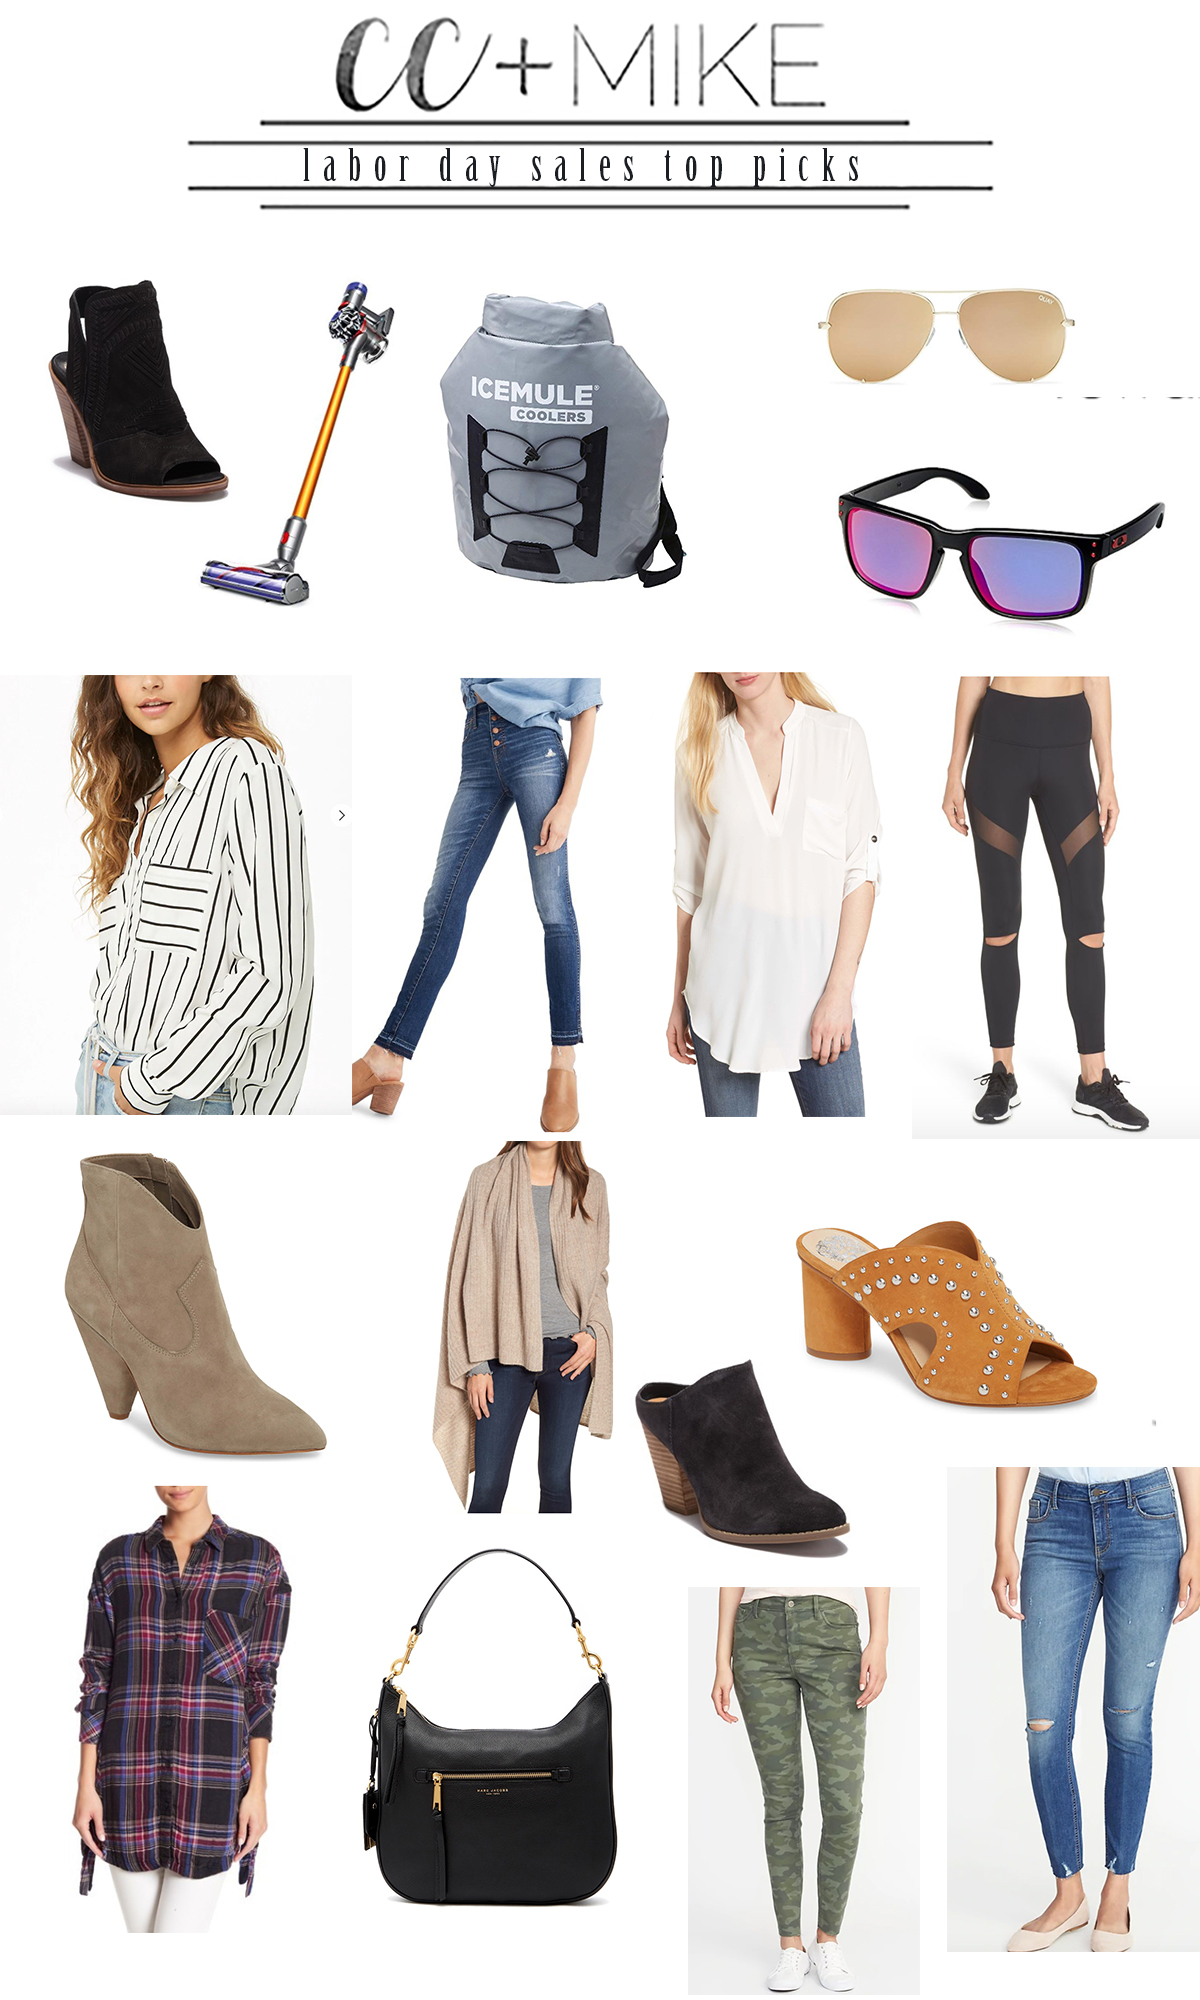 Labor Day Sales Guide 2018 final vince camuto booties quay aviator sunglasses old navy rockstar jeans fashion for moms